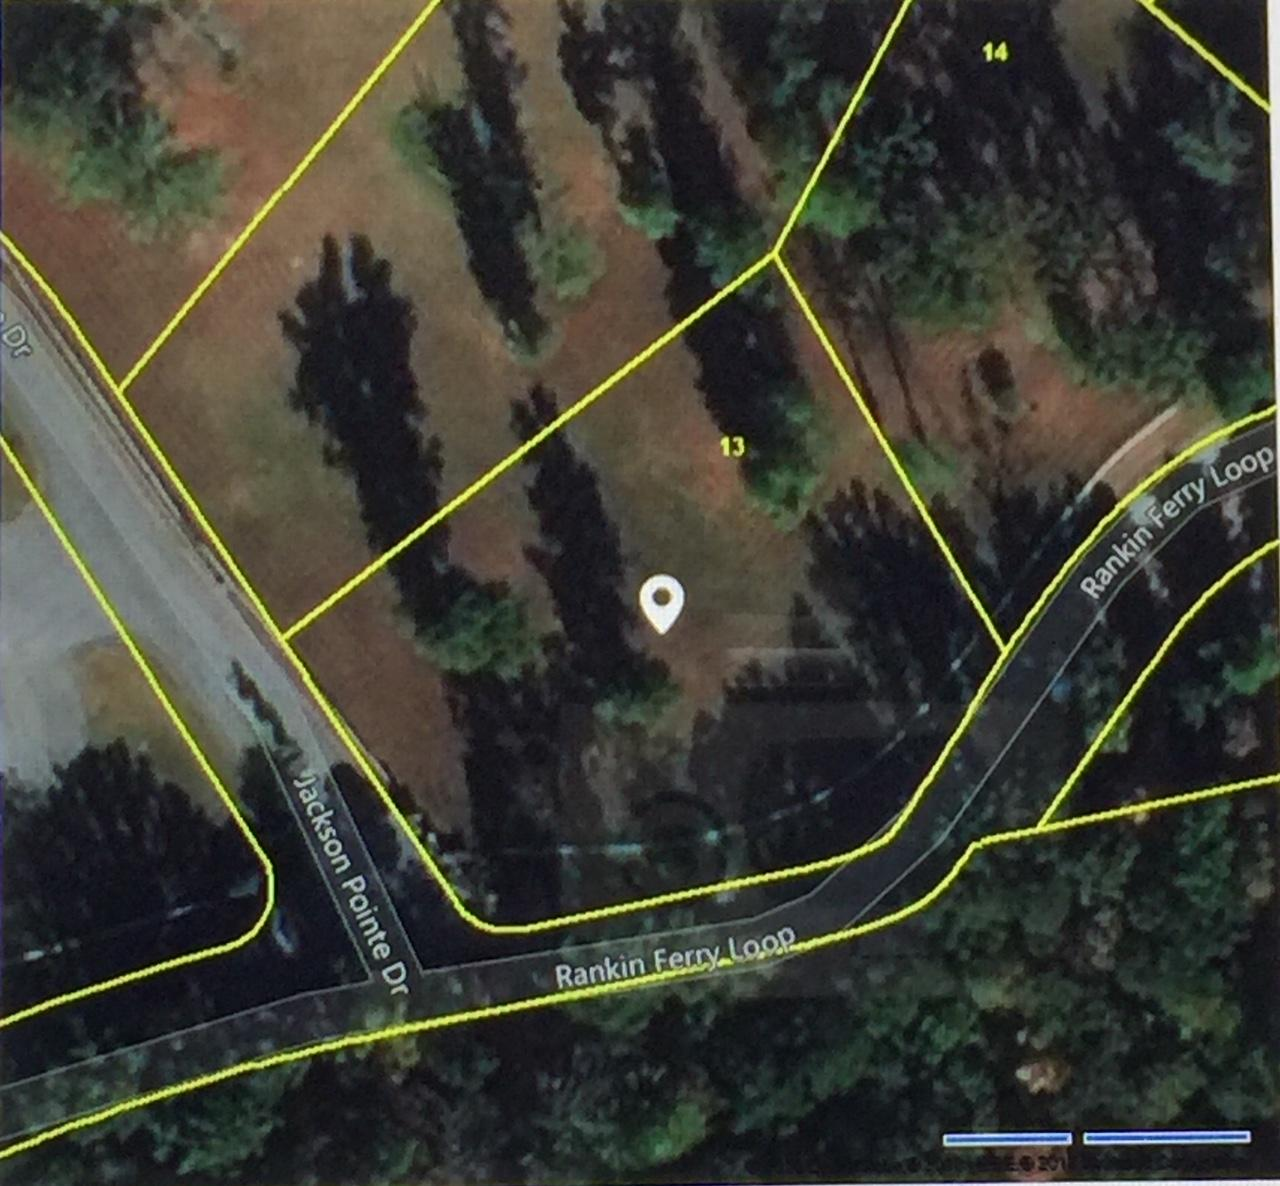 Lot 13 Rankin Ferry Loop, Louisville, Tennessee 37777, ,Lots & Acreage,For Sale,Rankin Ferry,1028428